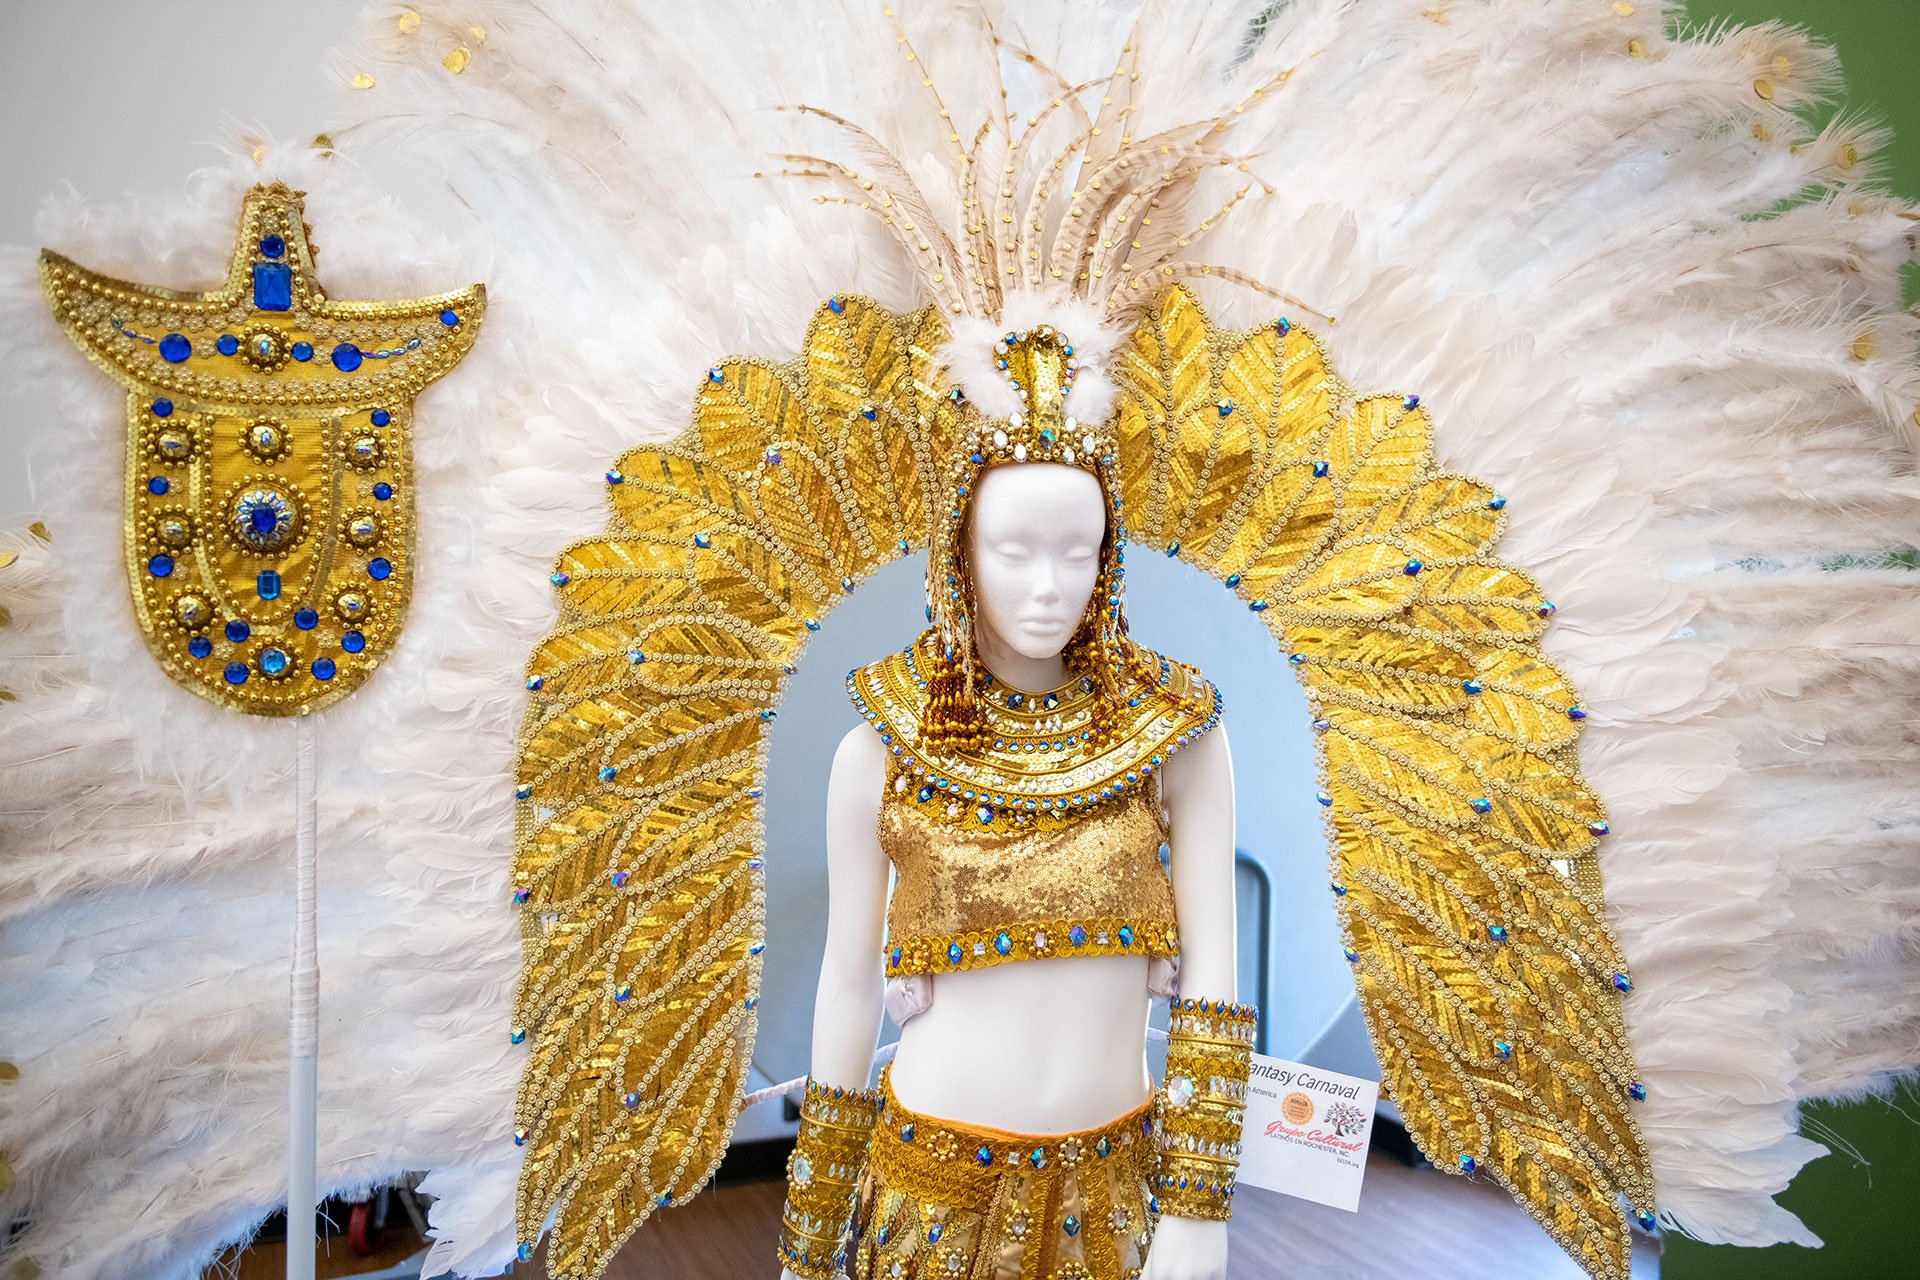 A Latin American carnival outfit is displayed.